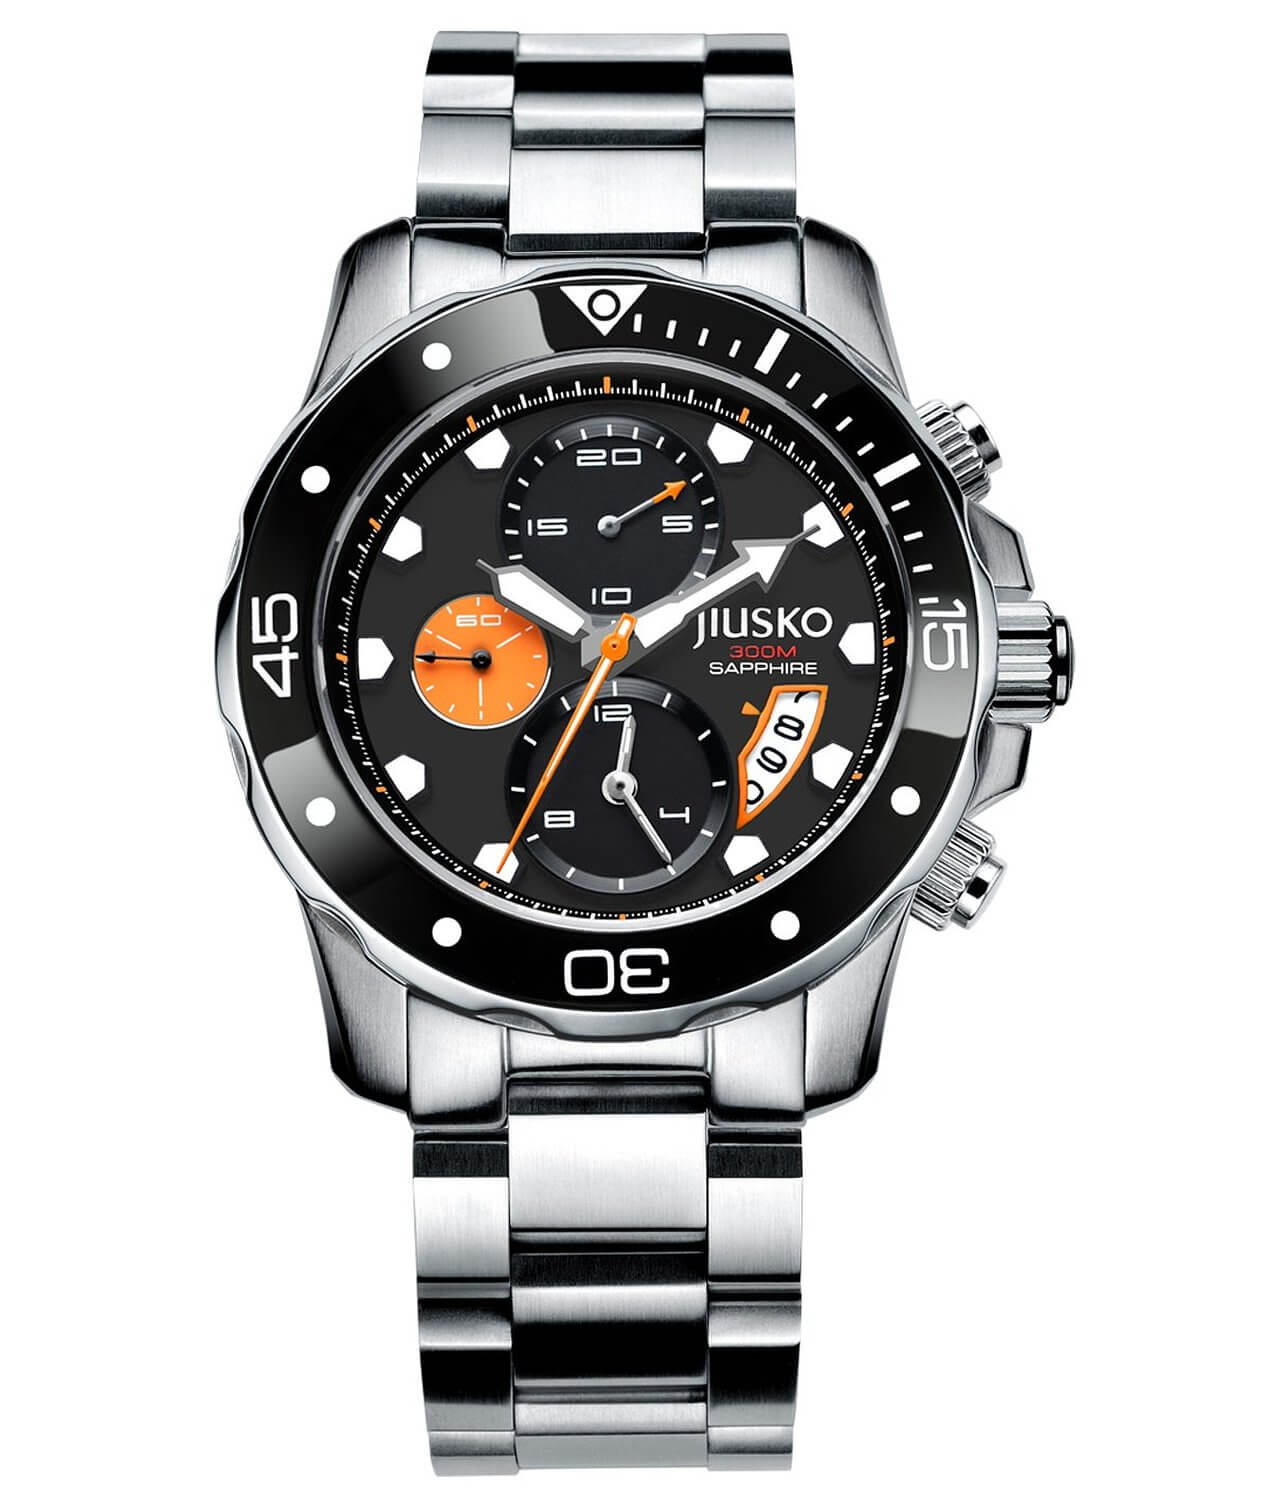 Jiusko Deep Sea 72LSB12 underwater watch